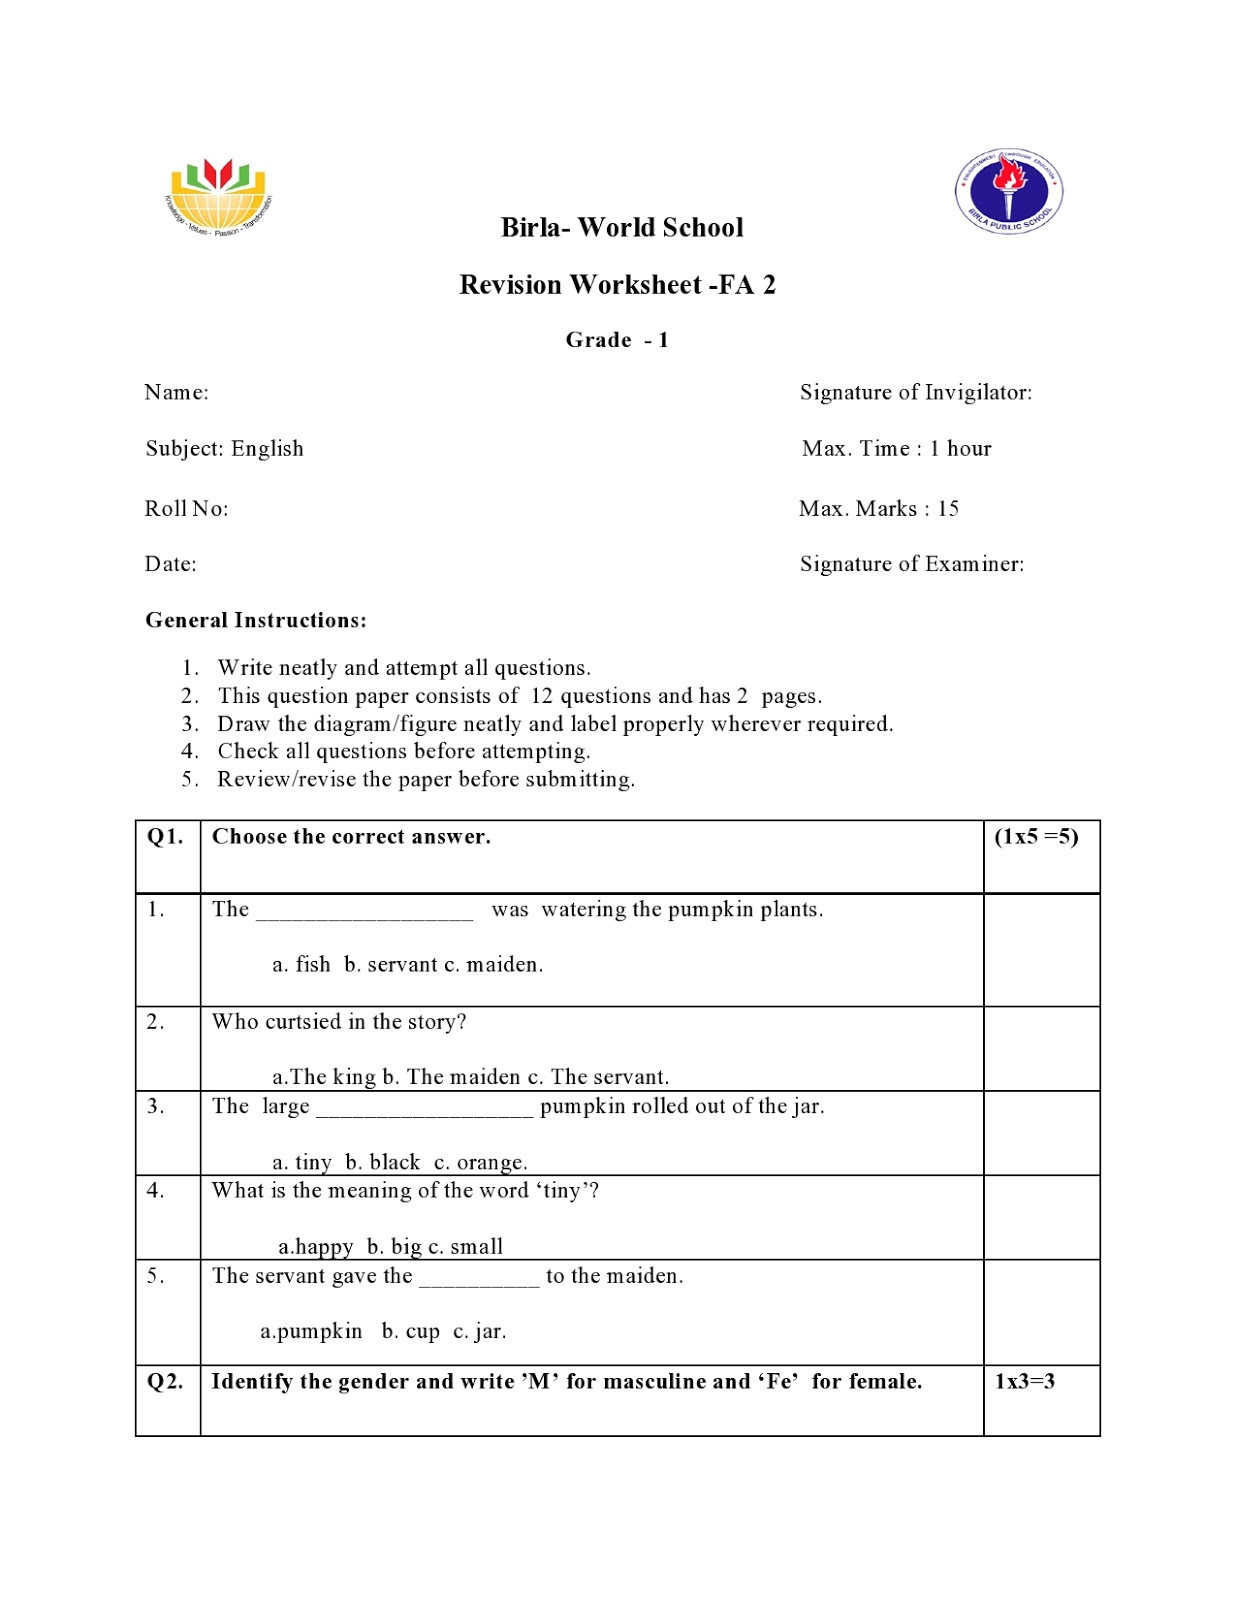 Birla World School Oman Revision Worksheet Sample Paper